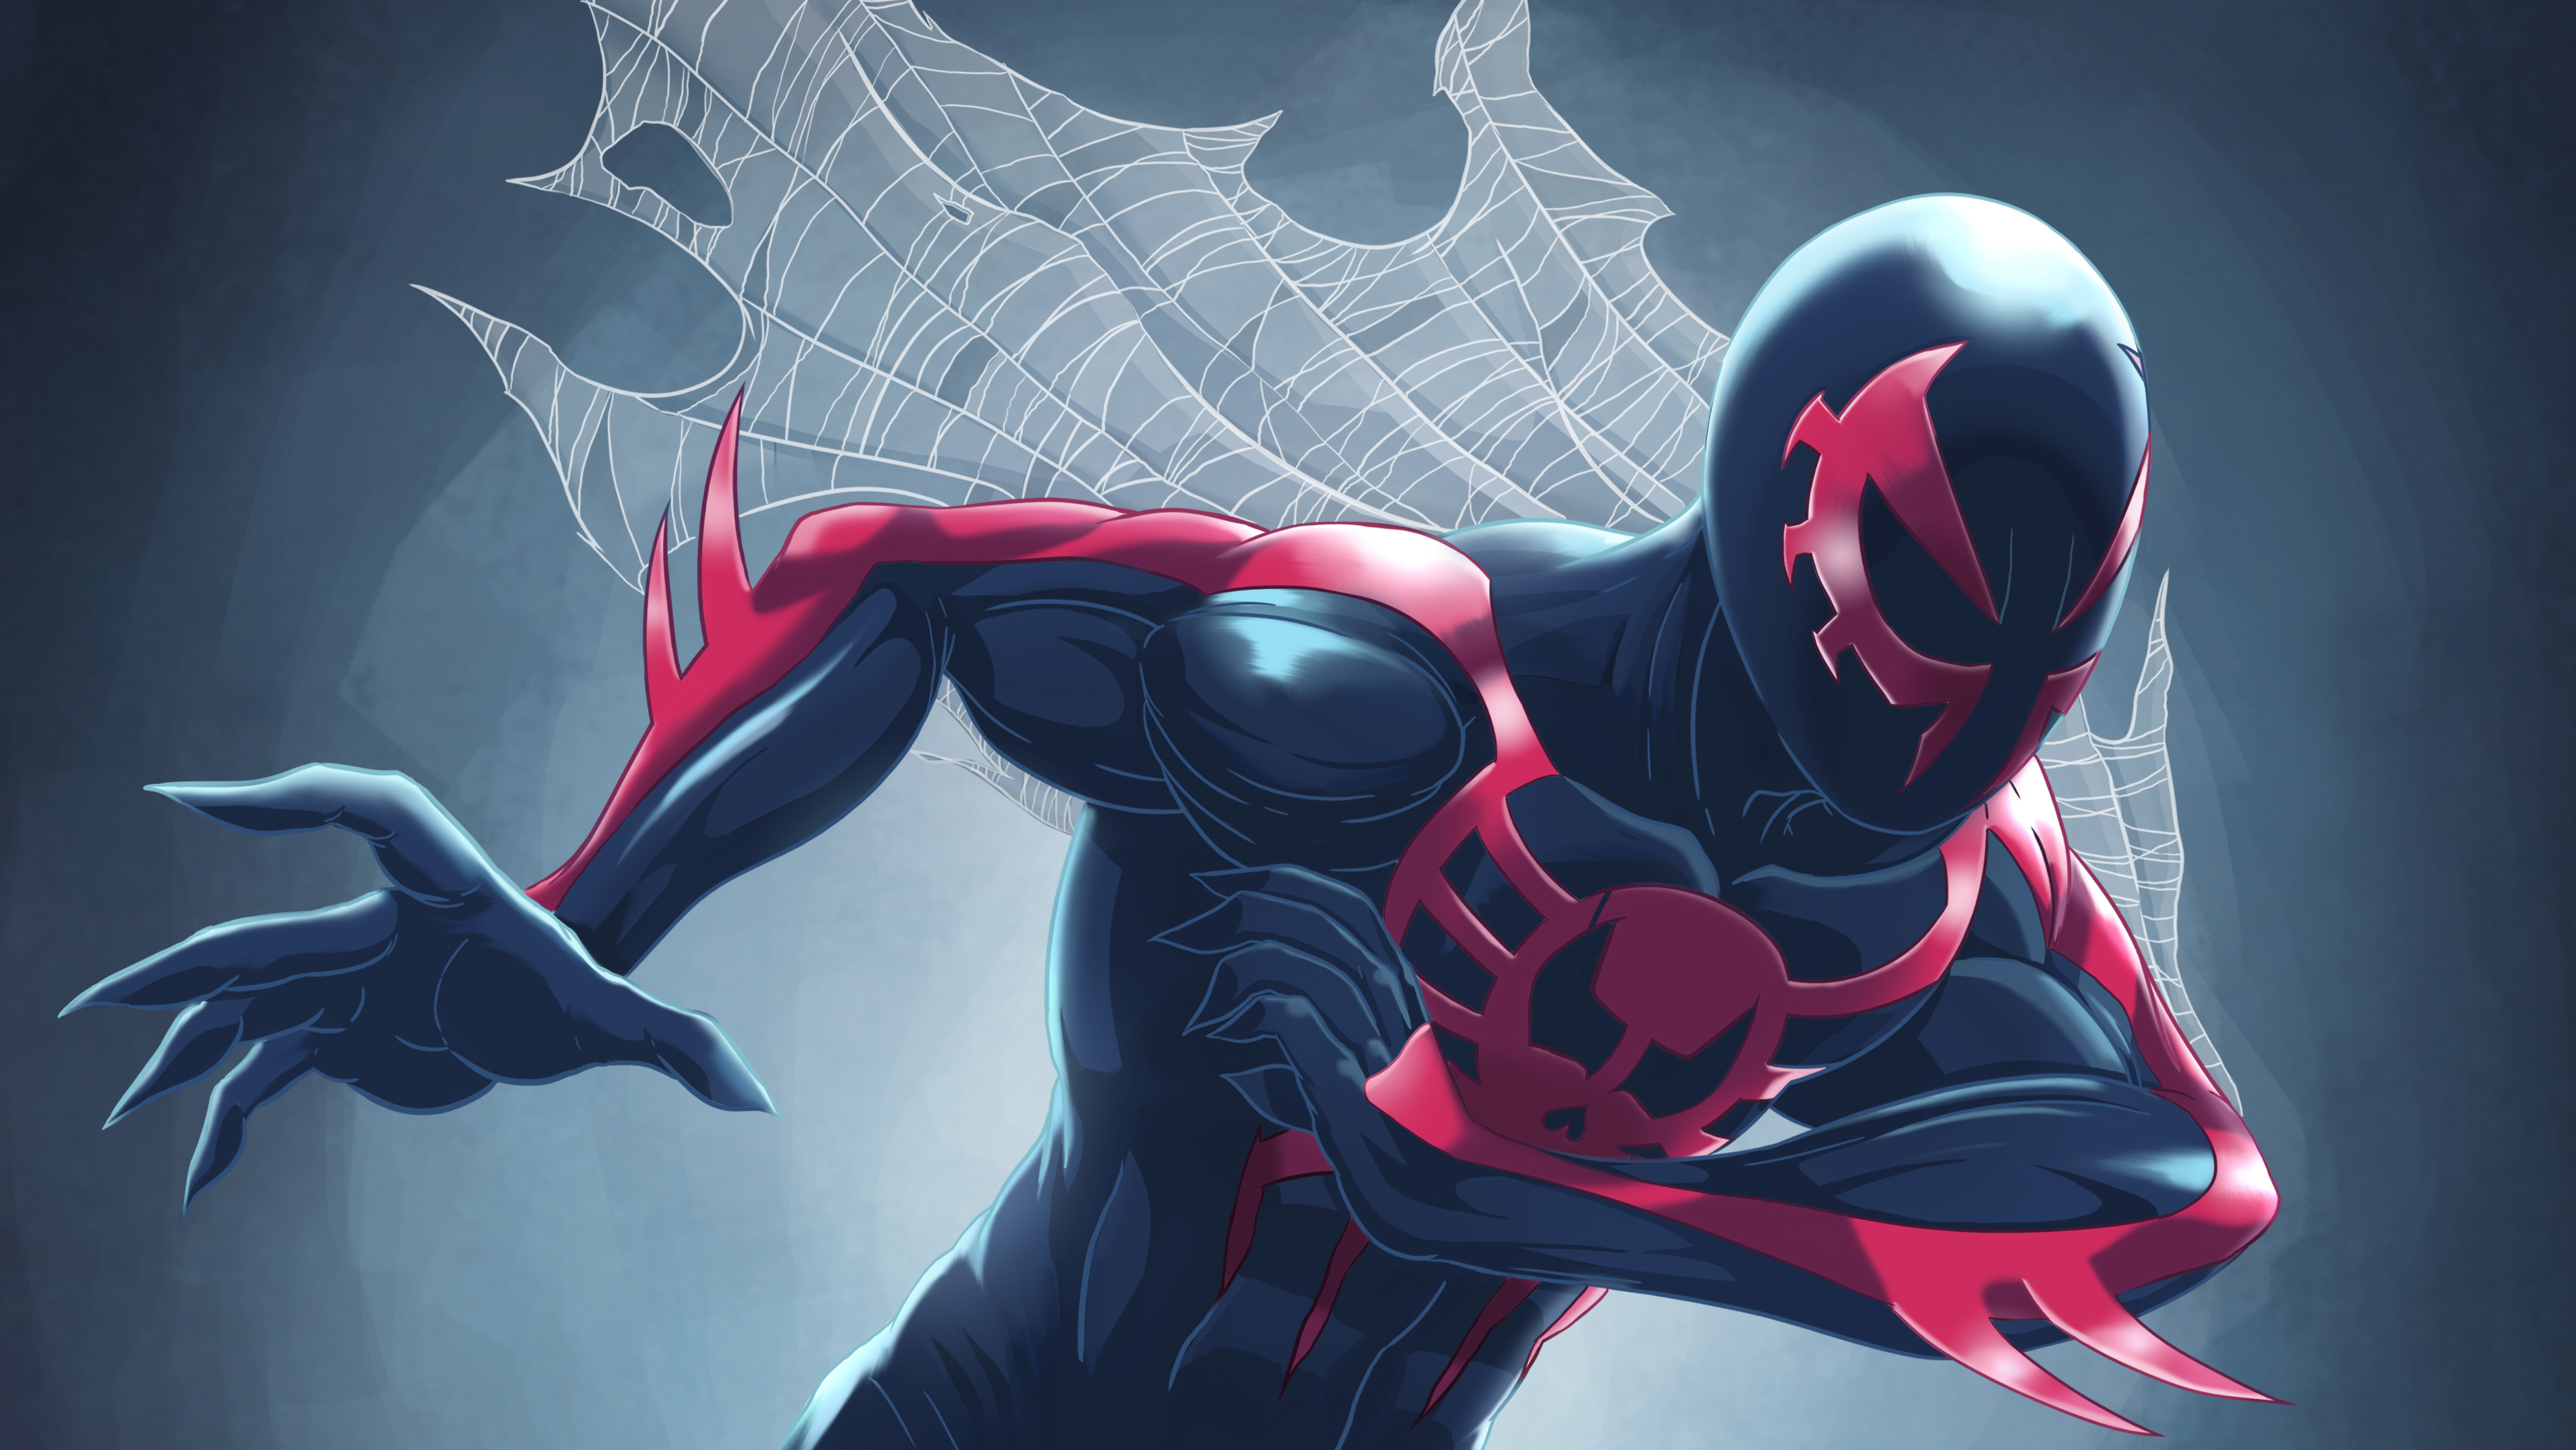 Spiderman 2099, HD Superheroes, 4k Wallpapers, Images